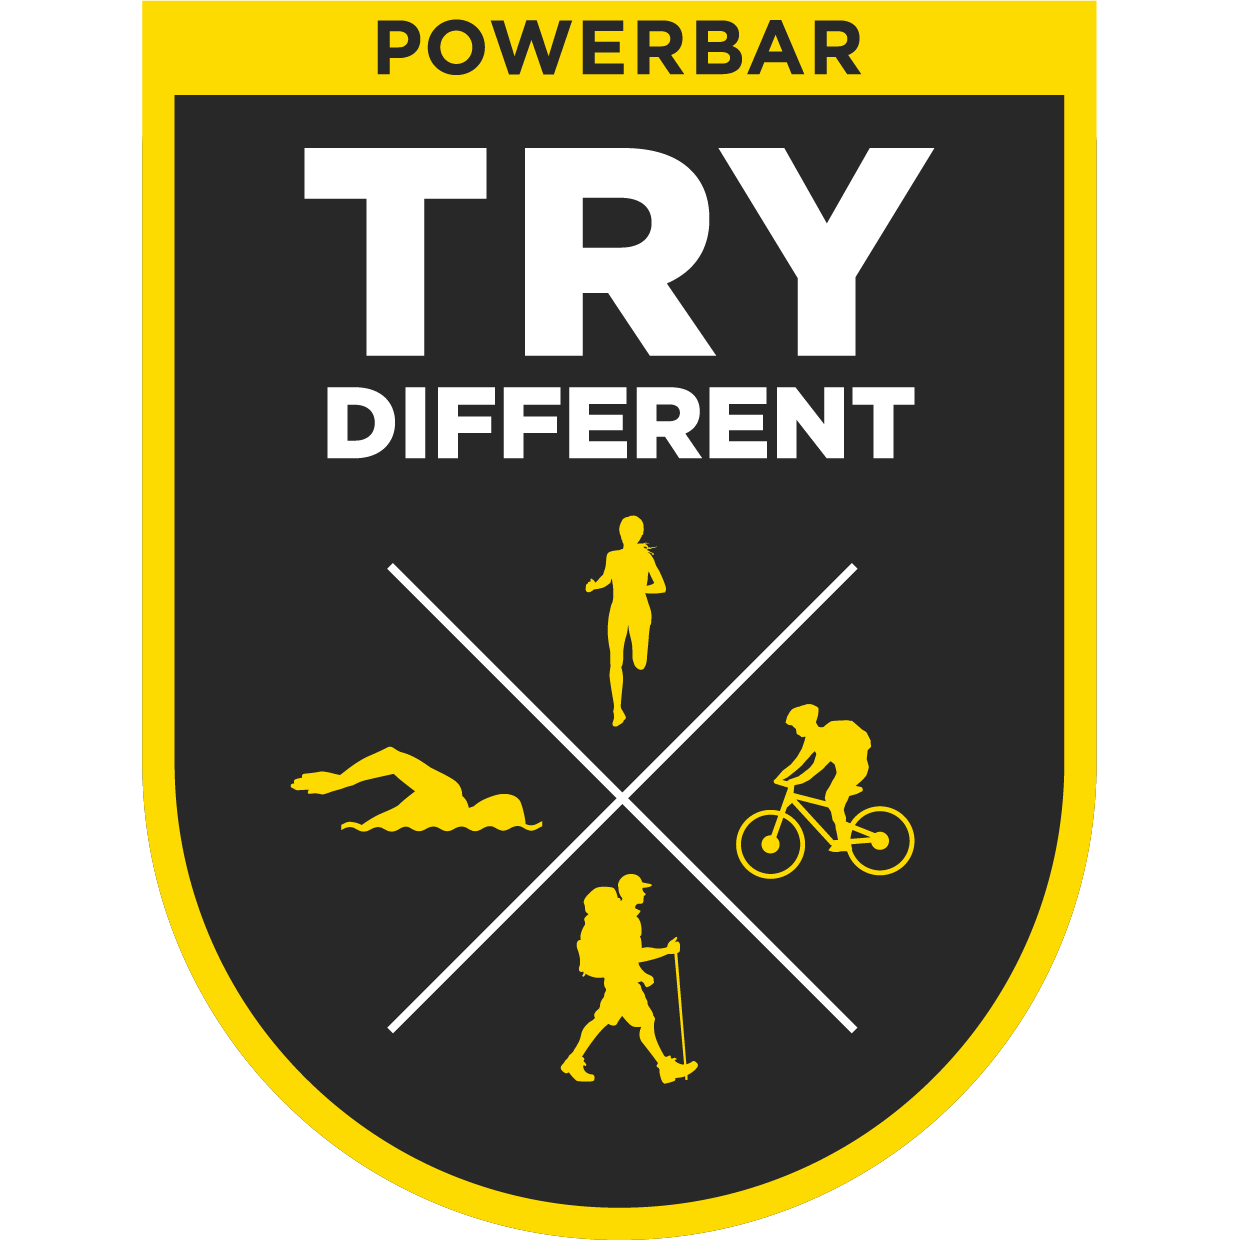 Try different - with PowerBar